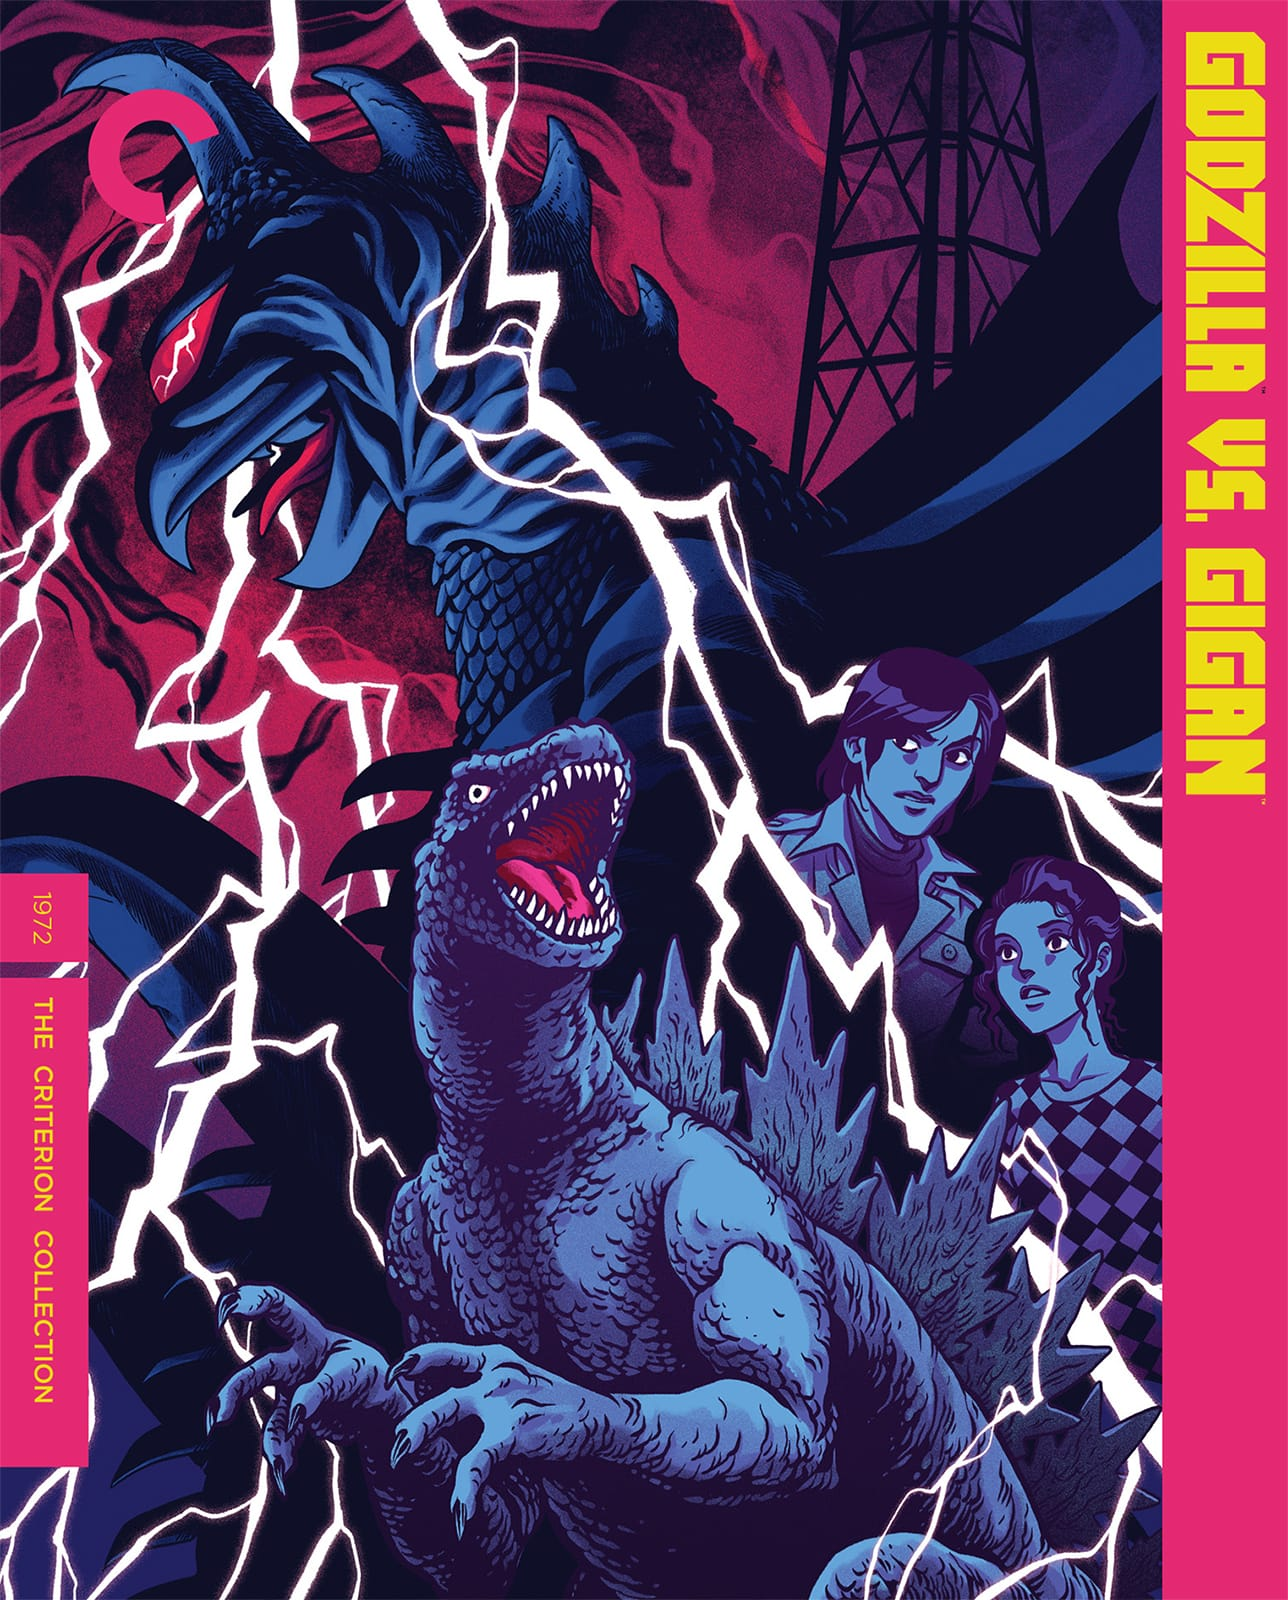 Godzilla vs. Gigan (1972) | The Criterion Collection